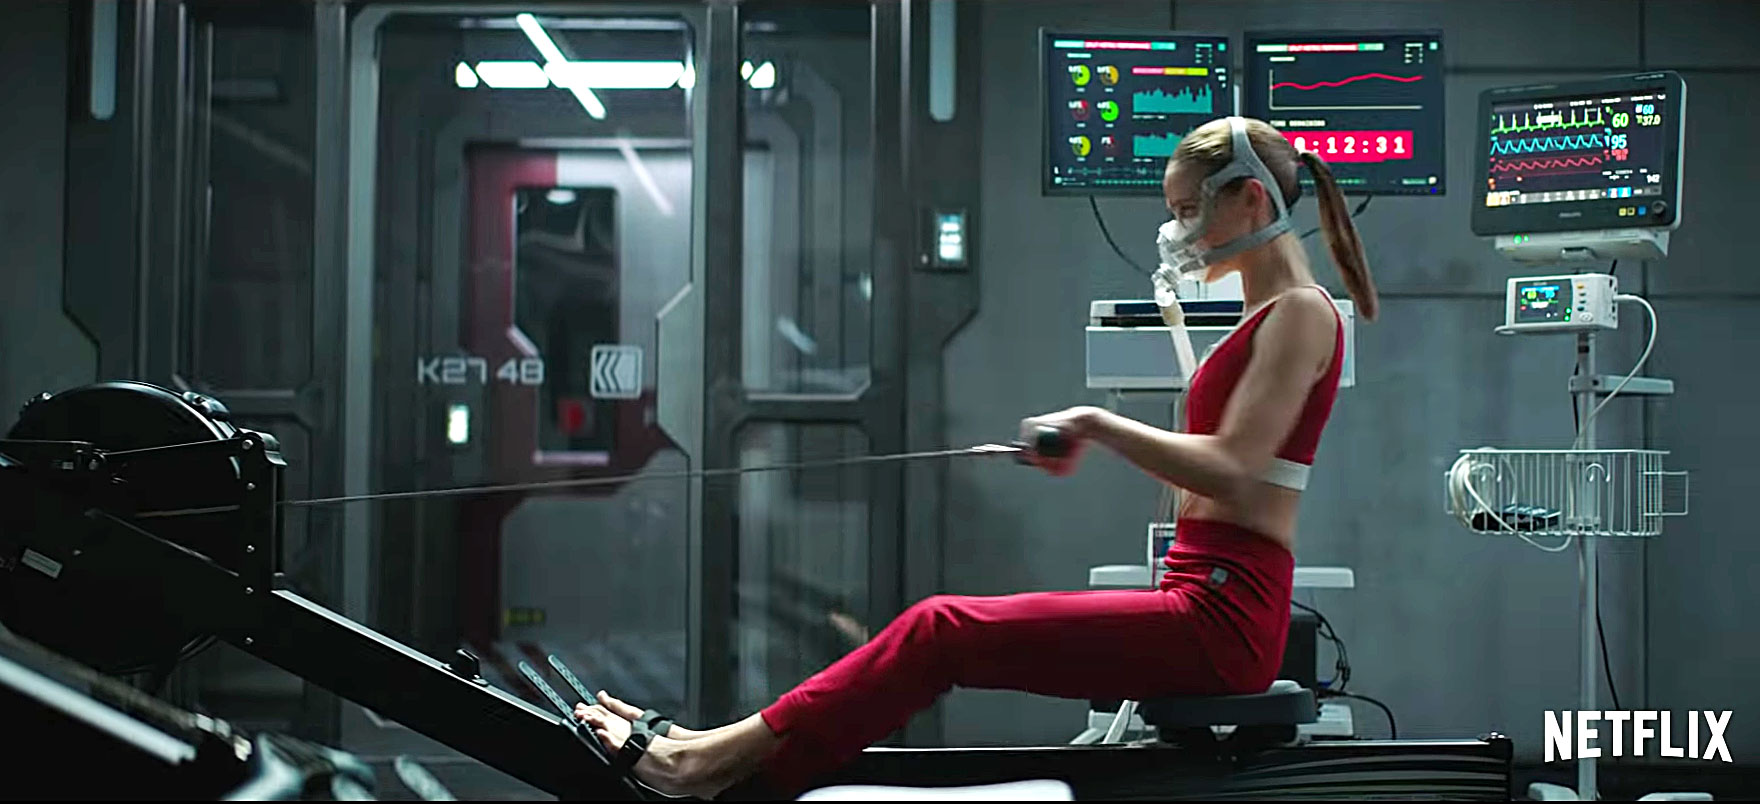 """Can't Miss Summer Movie Preview - After being raised underground by a robot, Daughter ( Clara Rugaard ) meets a blood-soaked woman ( Hilary Swank ) with new details about the world. """"It's always been Daughter and the robot, so it's alarming when this woman disrupts everything,"""" says Ruggard."""